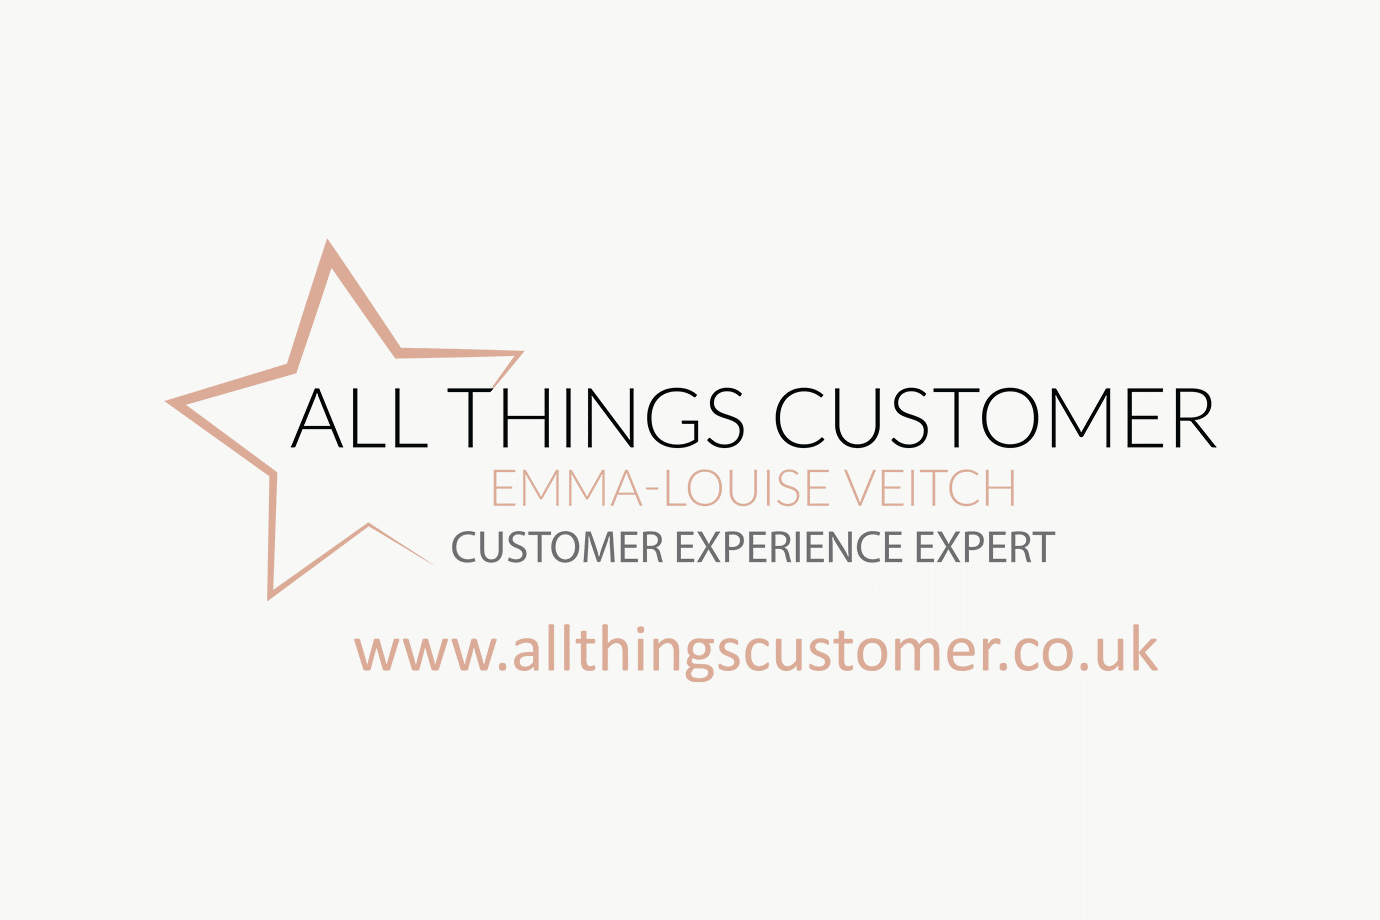 All Things Customer